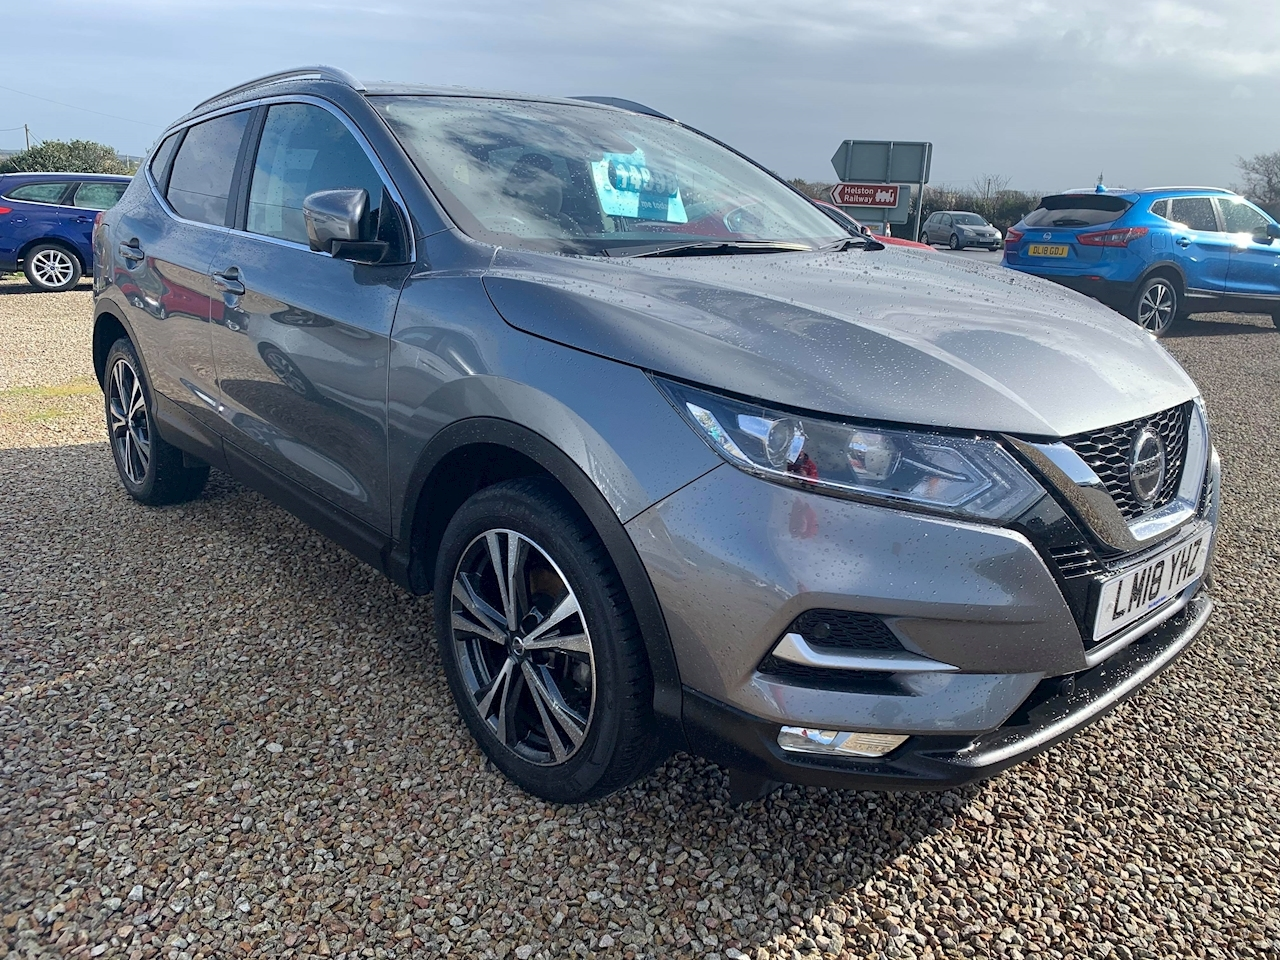 Nissan Qashqai N-Connecta Dci Hatchback 1.5 Manual Diesel